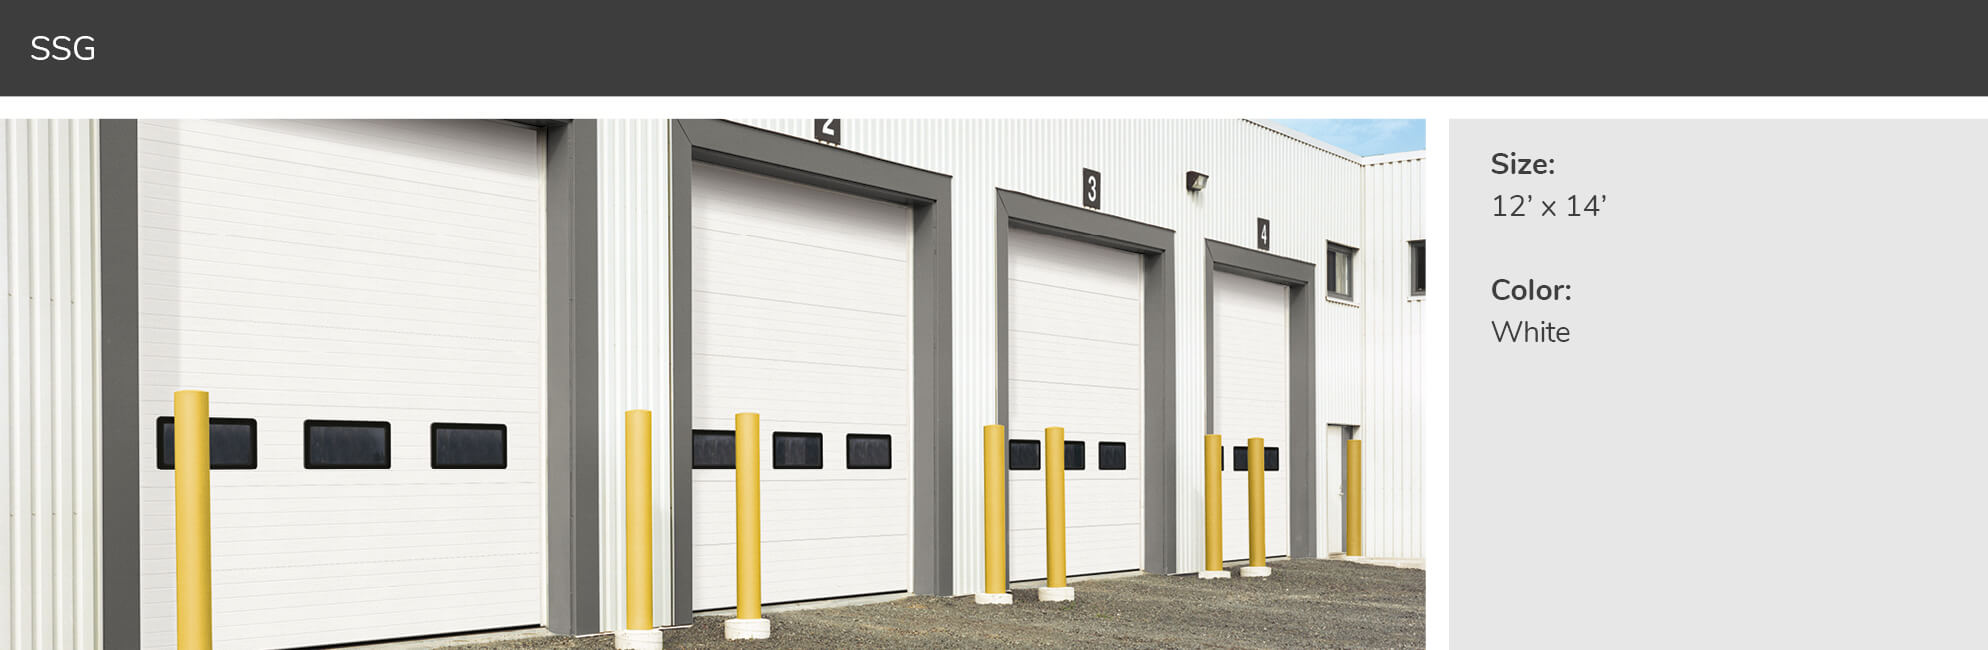 SSG, 12' x 14', White doors​